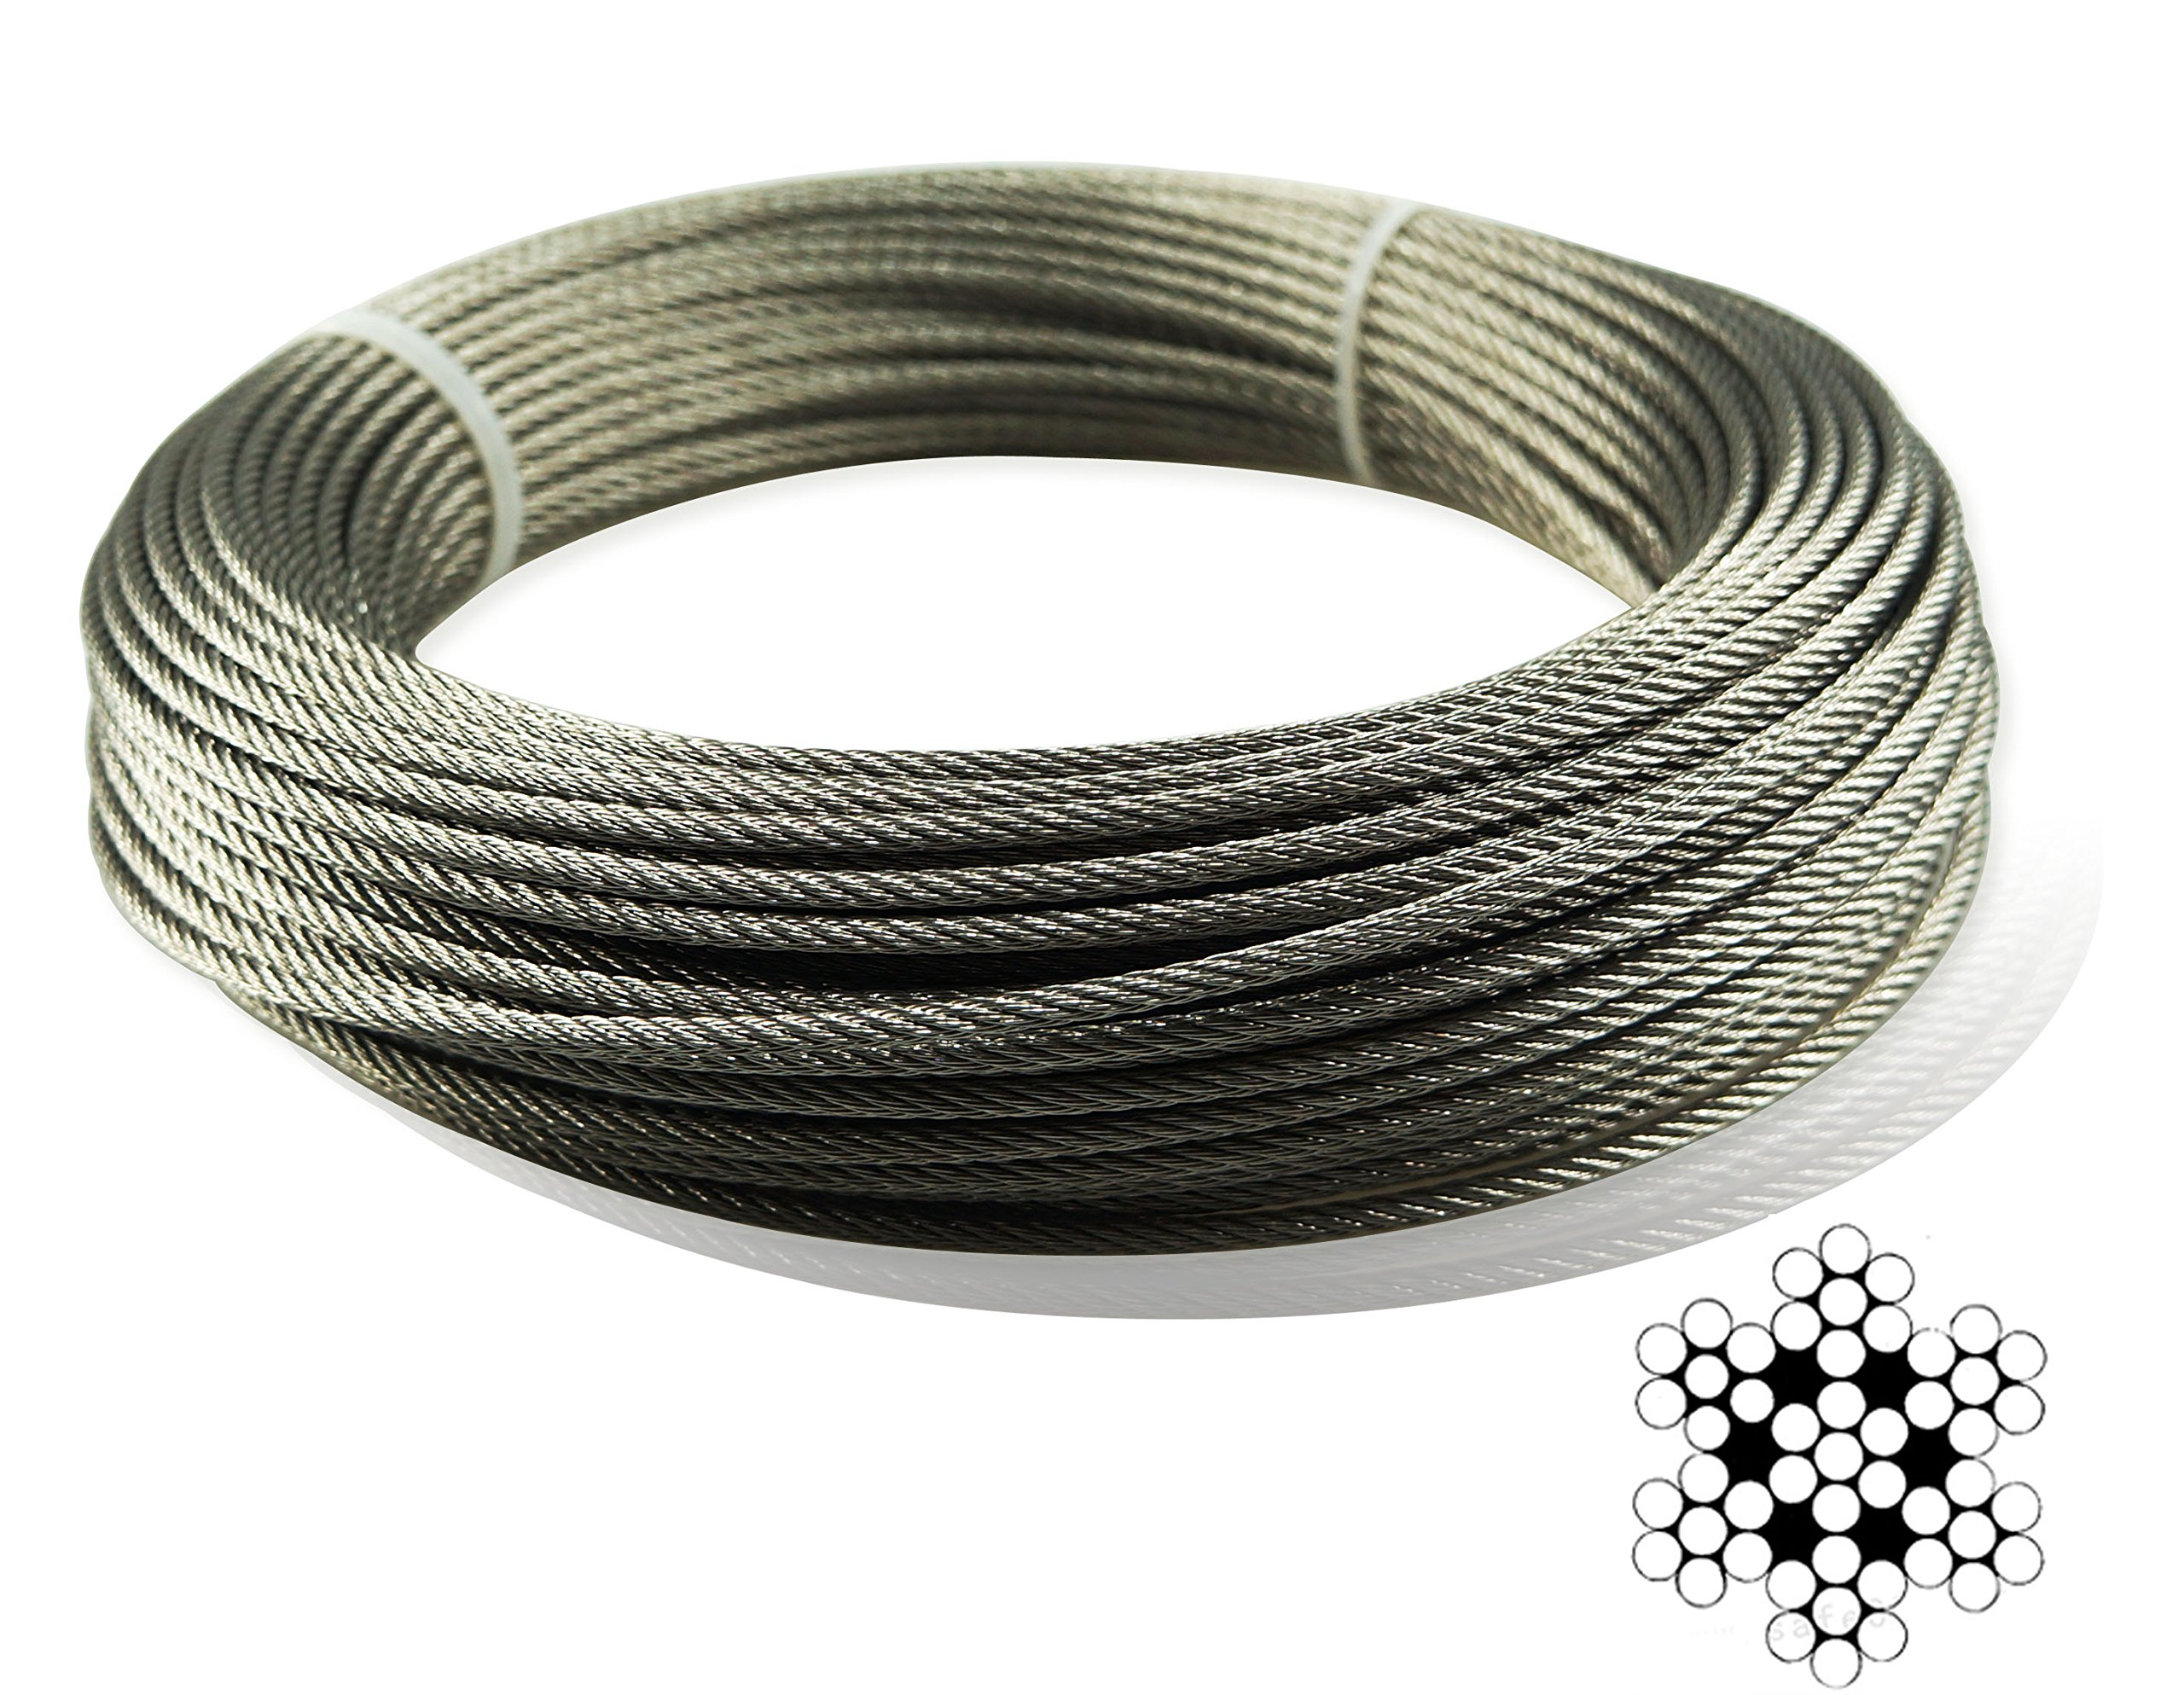 Muzata Stainless Aircraft Steel Wire Rope Cable For Railing,Decking, DIY Balustrade, 1/8Inch,7x7,165Feet